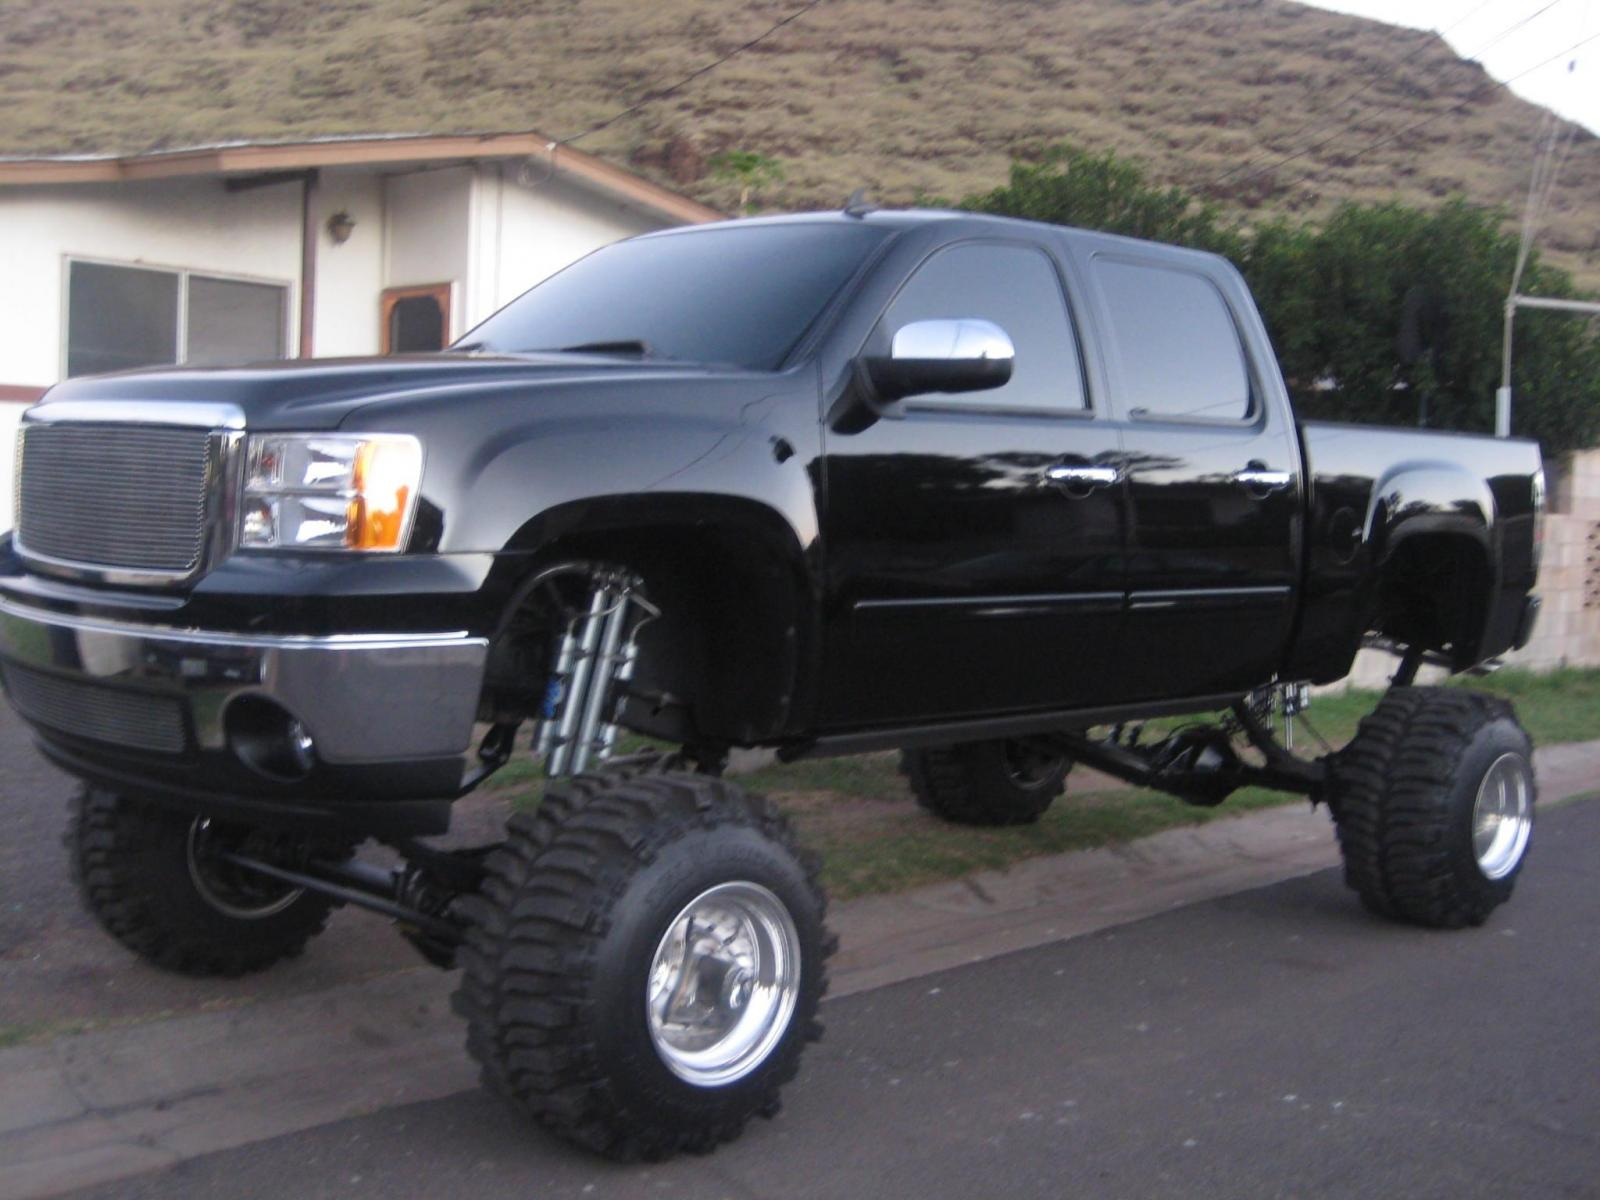 2008 GMC Sierra 1500 Information and photos ZombieDrive